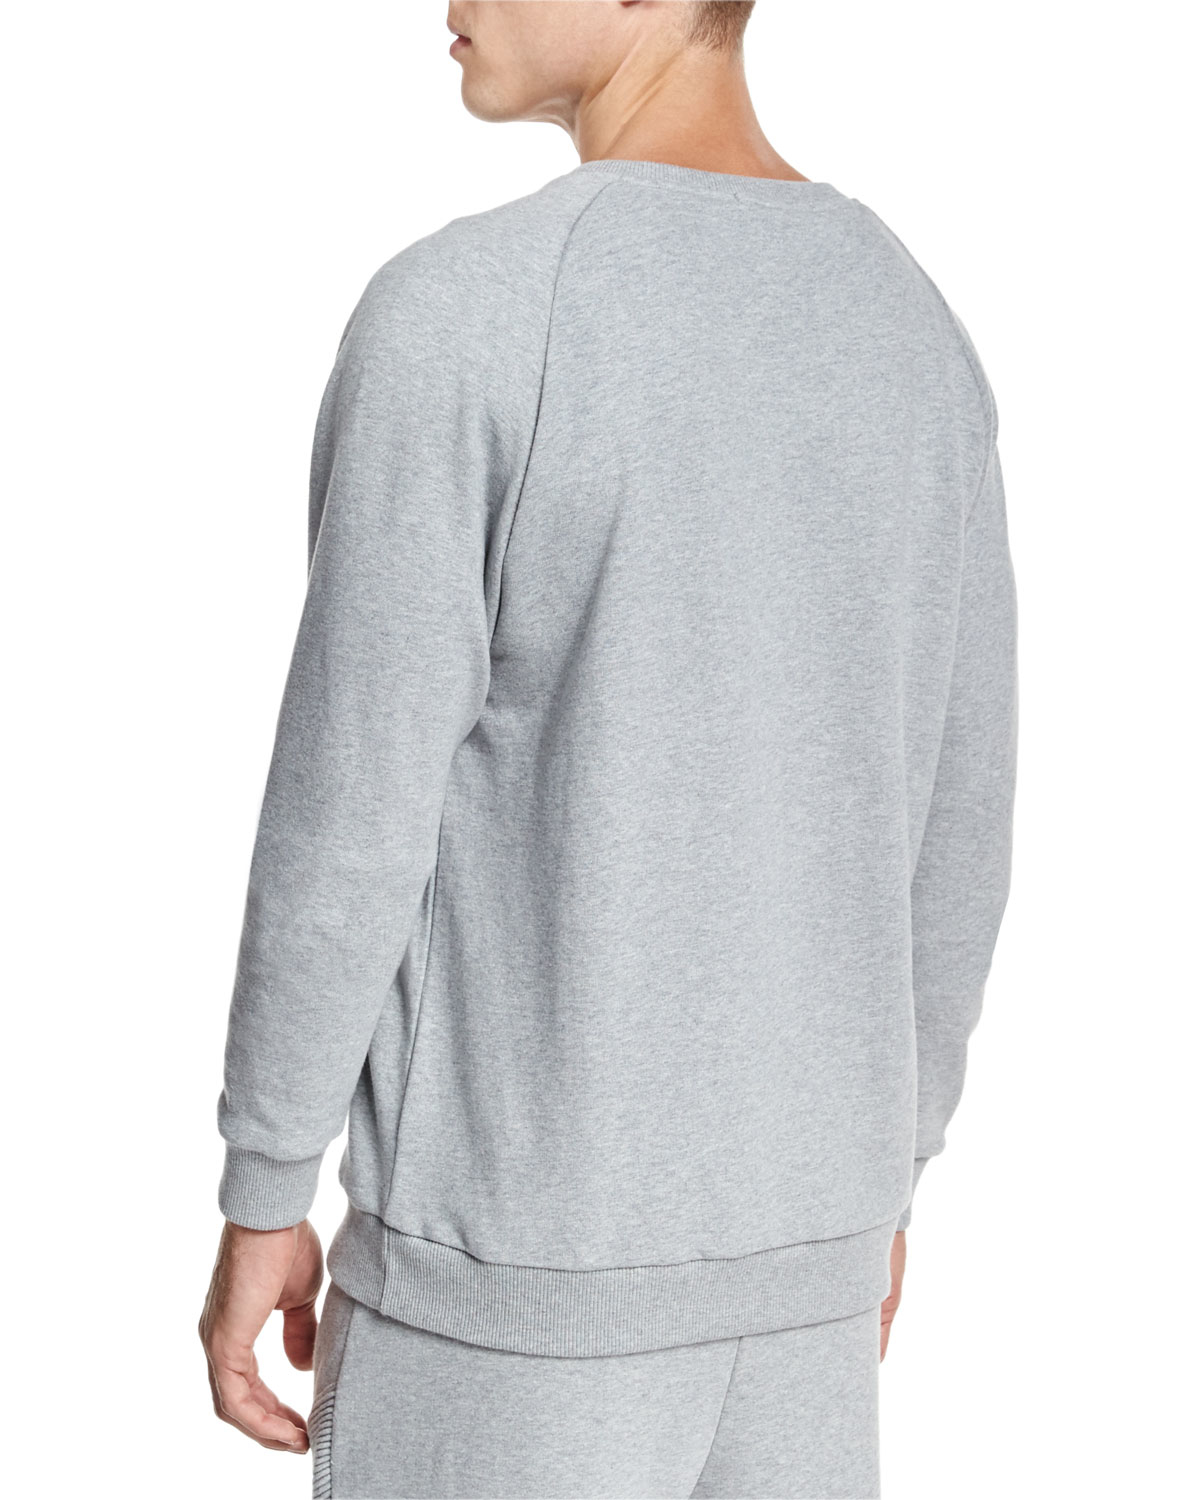 Shop the latest hoodies & sweatshirts for men fashion style sale online at best discount prices, and search for more best cool mens pullover hoodies & cute sweatshirts with free shipping at chaplin-favor.tk